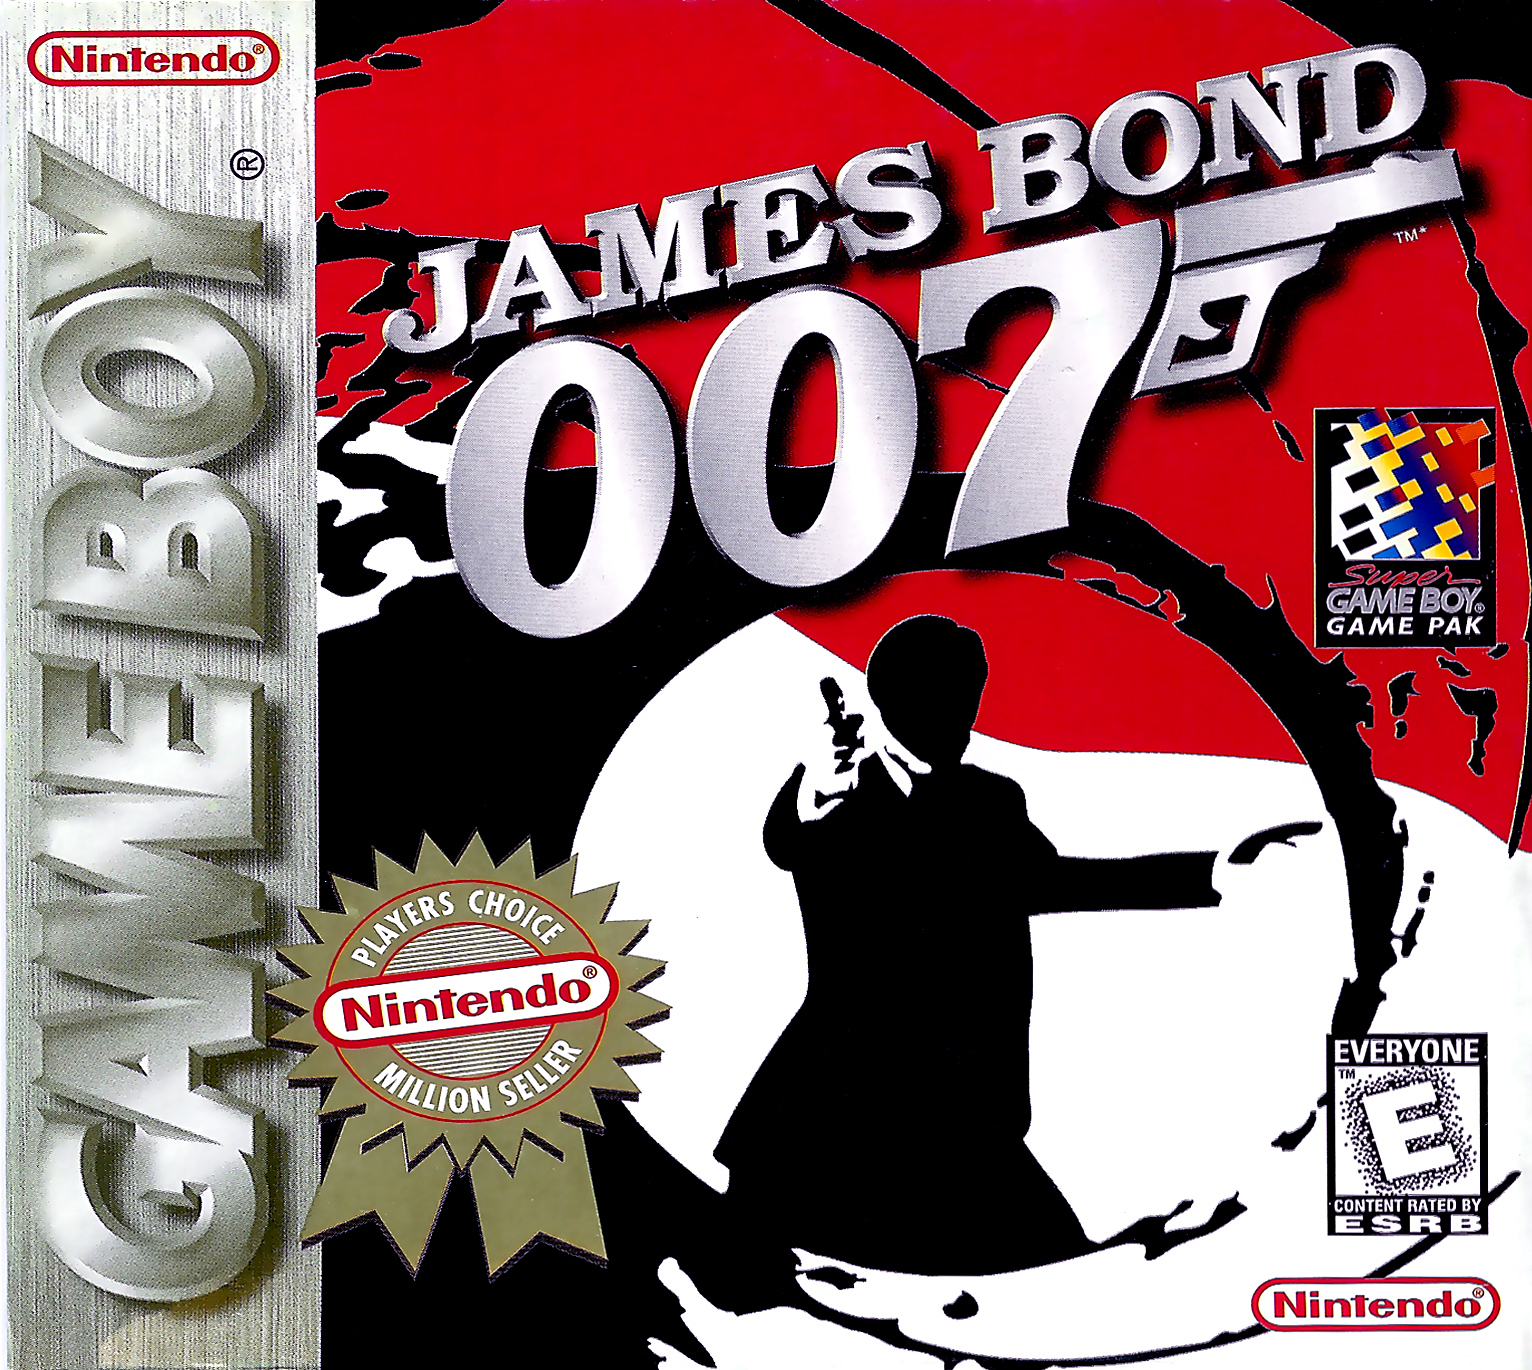 James Bond 007/Game Boy